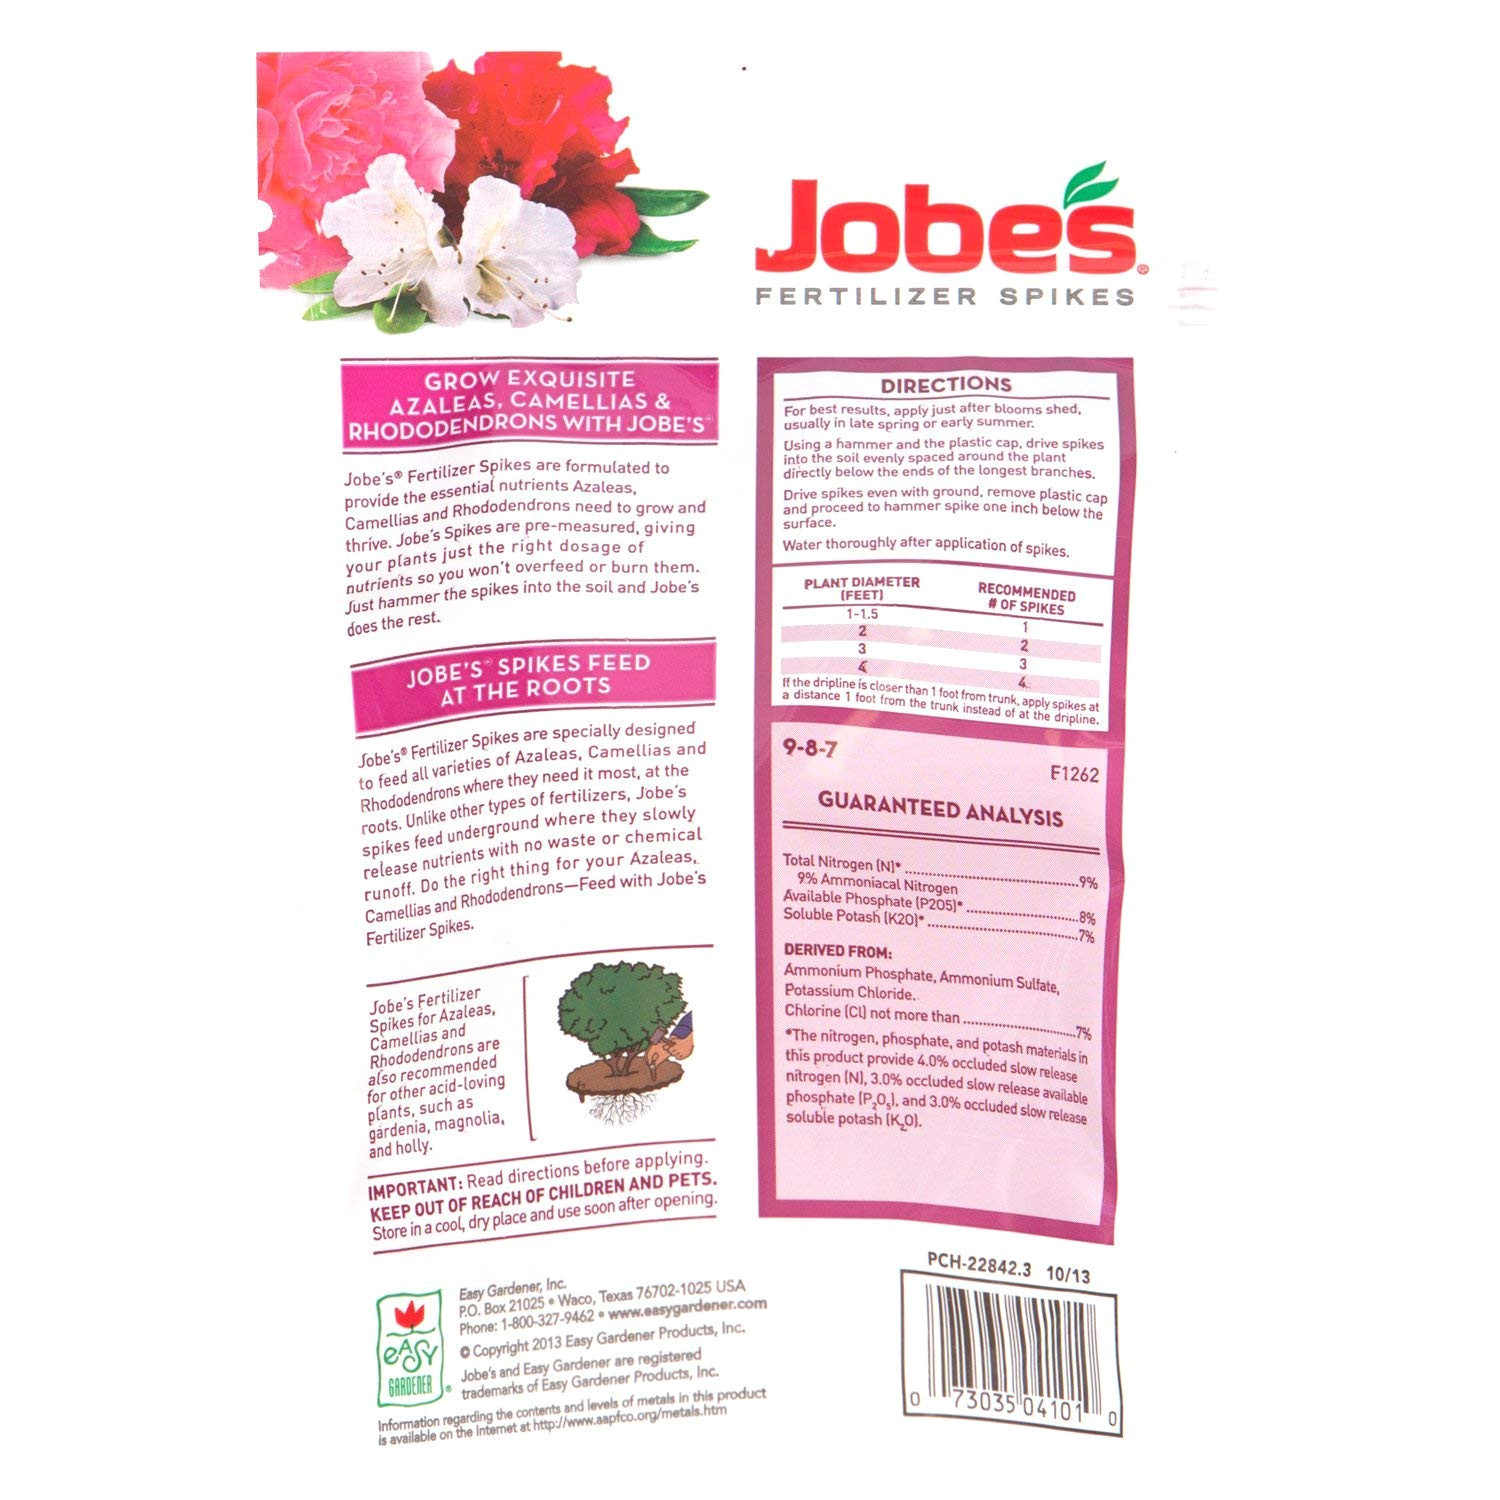 Beat Your Neighbor Fertilizer Amazon Amazon Com Jobe S Fertilizer Spikes for Azalea Camellia and